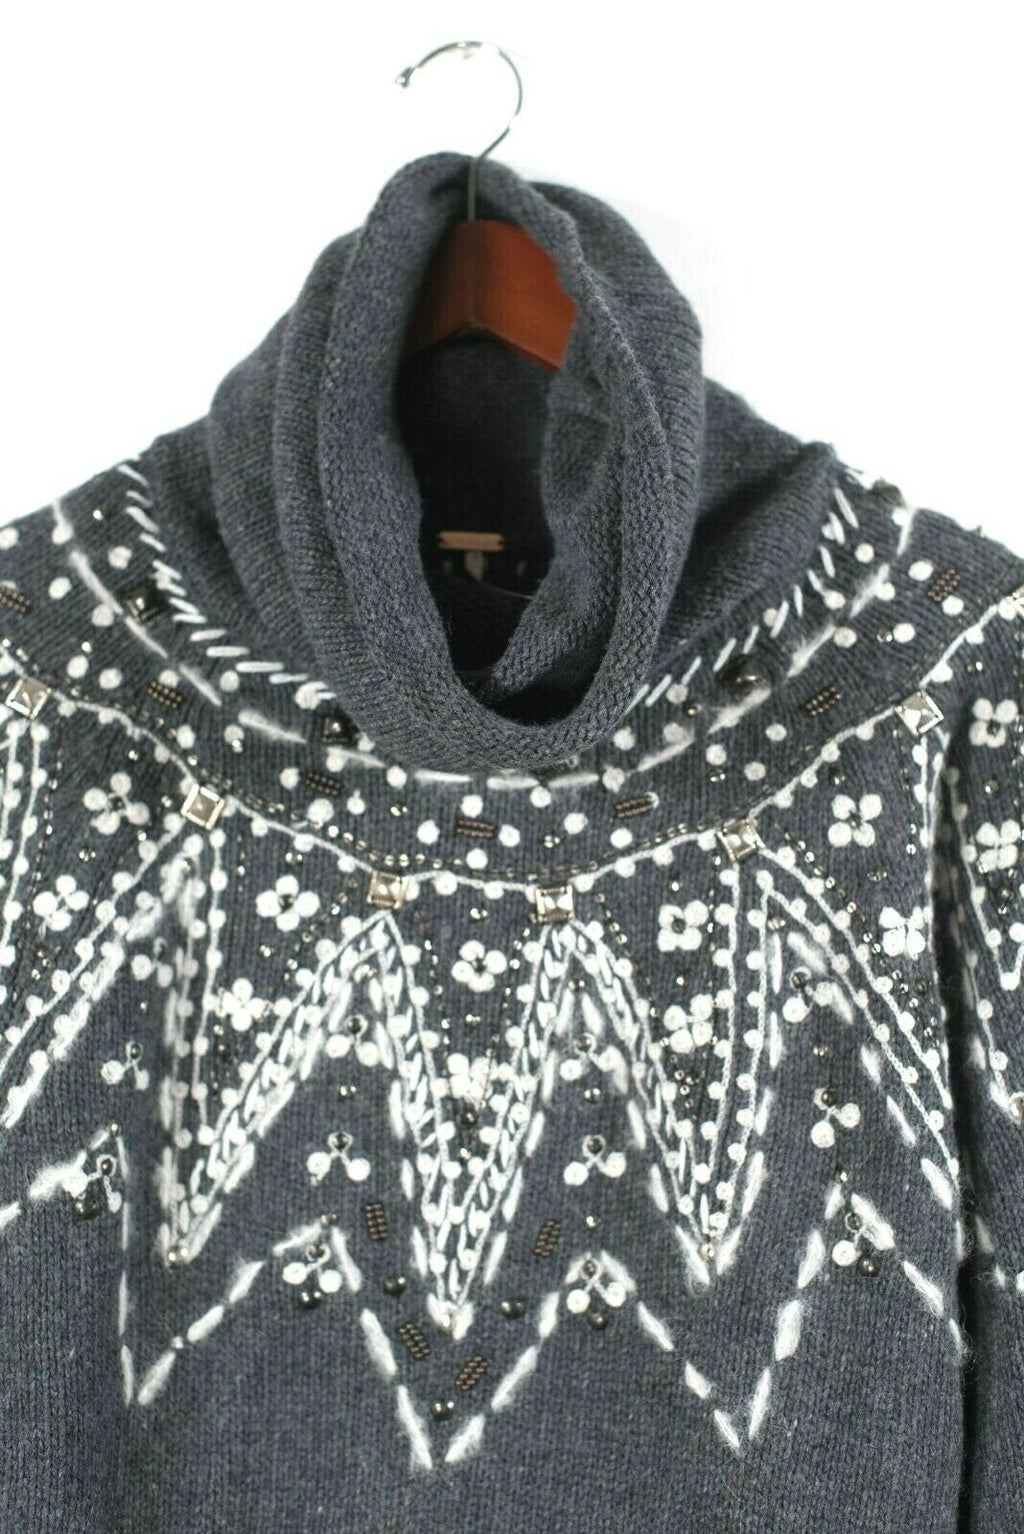 Free People Womens Small Grey Pullover Sweater Nordic Fair Isle Knit Shirt $200